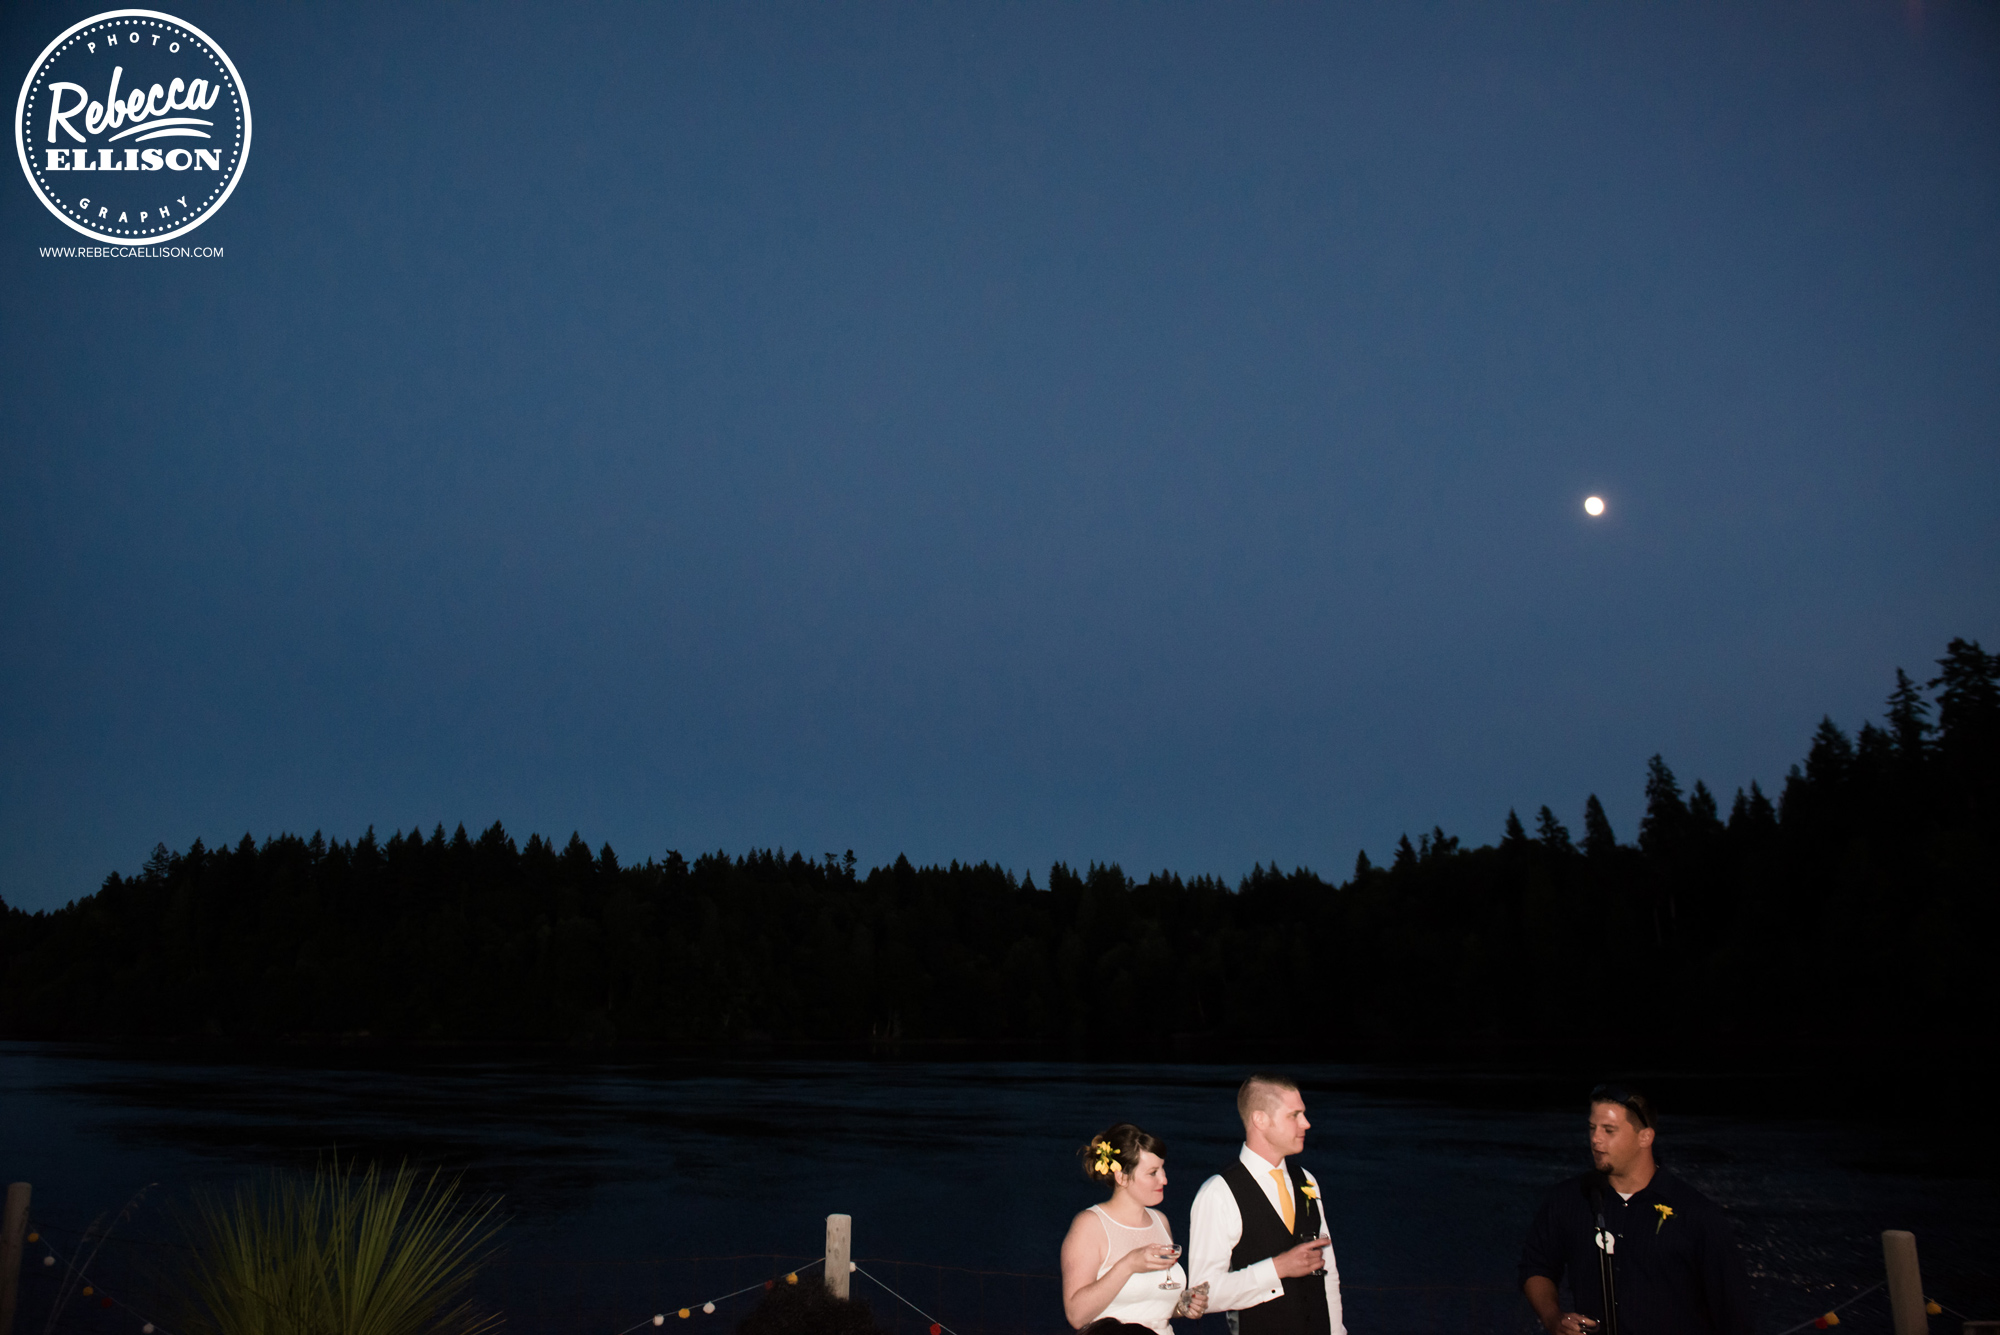 Moonrise at a backyard beach house wedding near Seattle photographed by Rebecca Ellison Photography